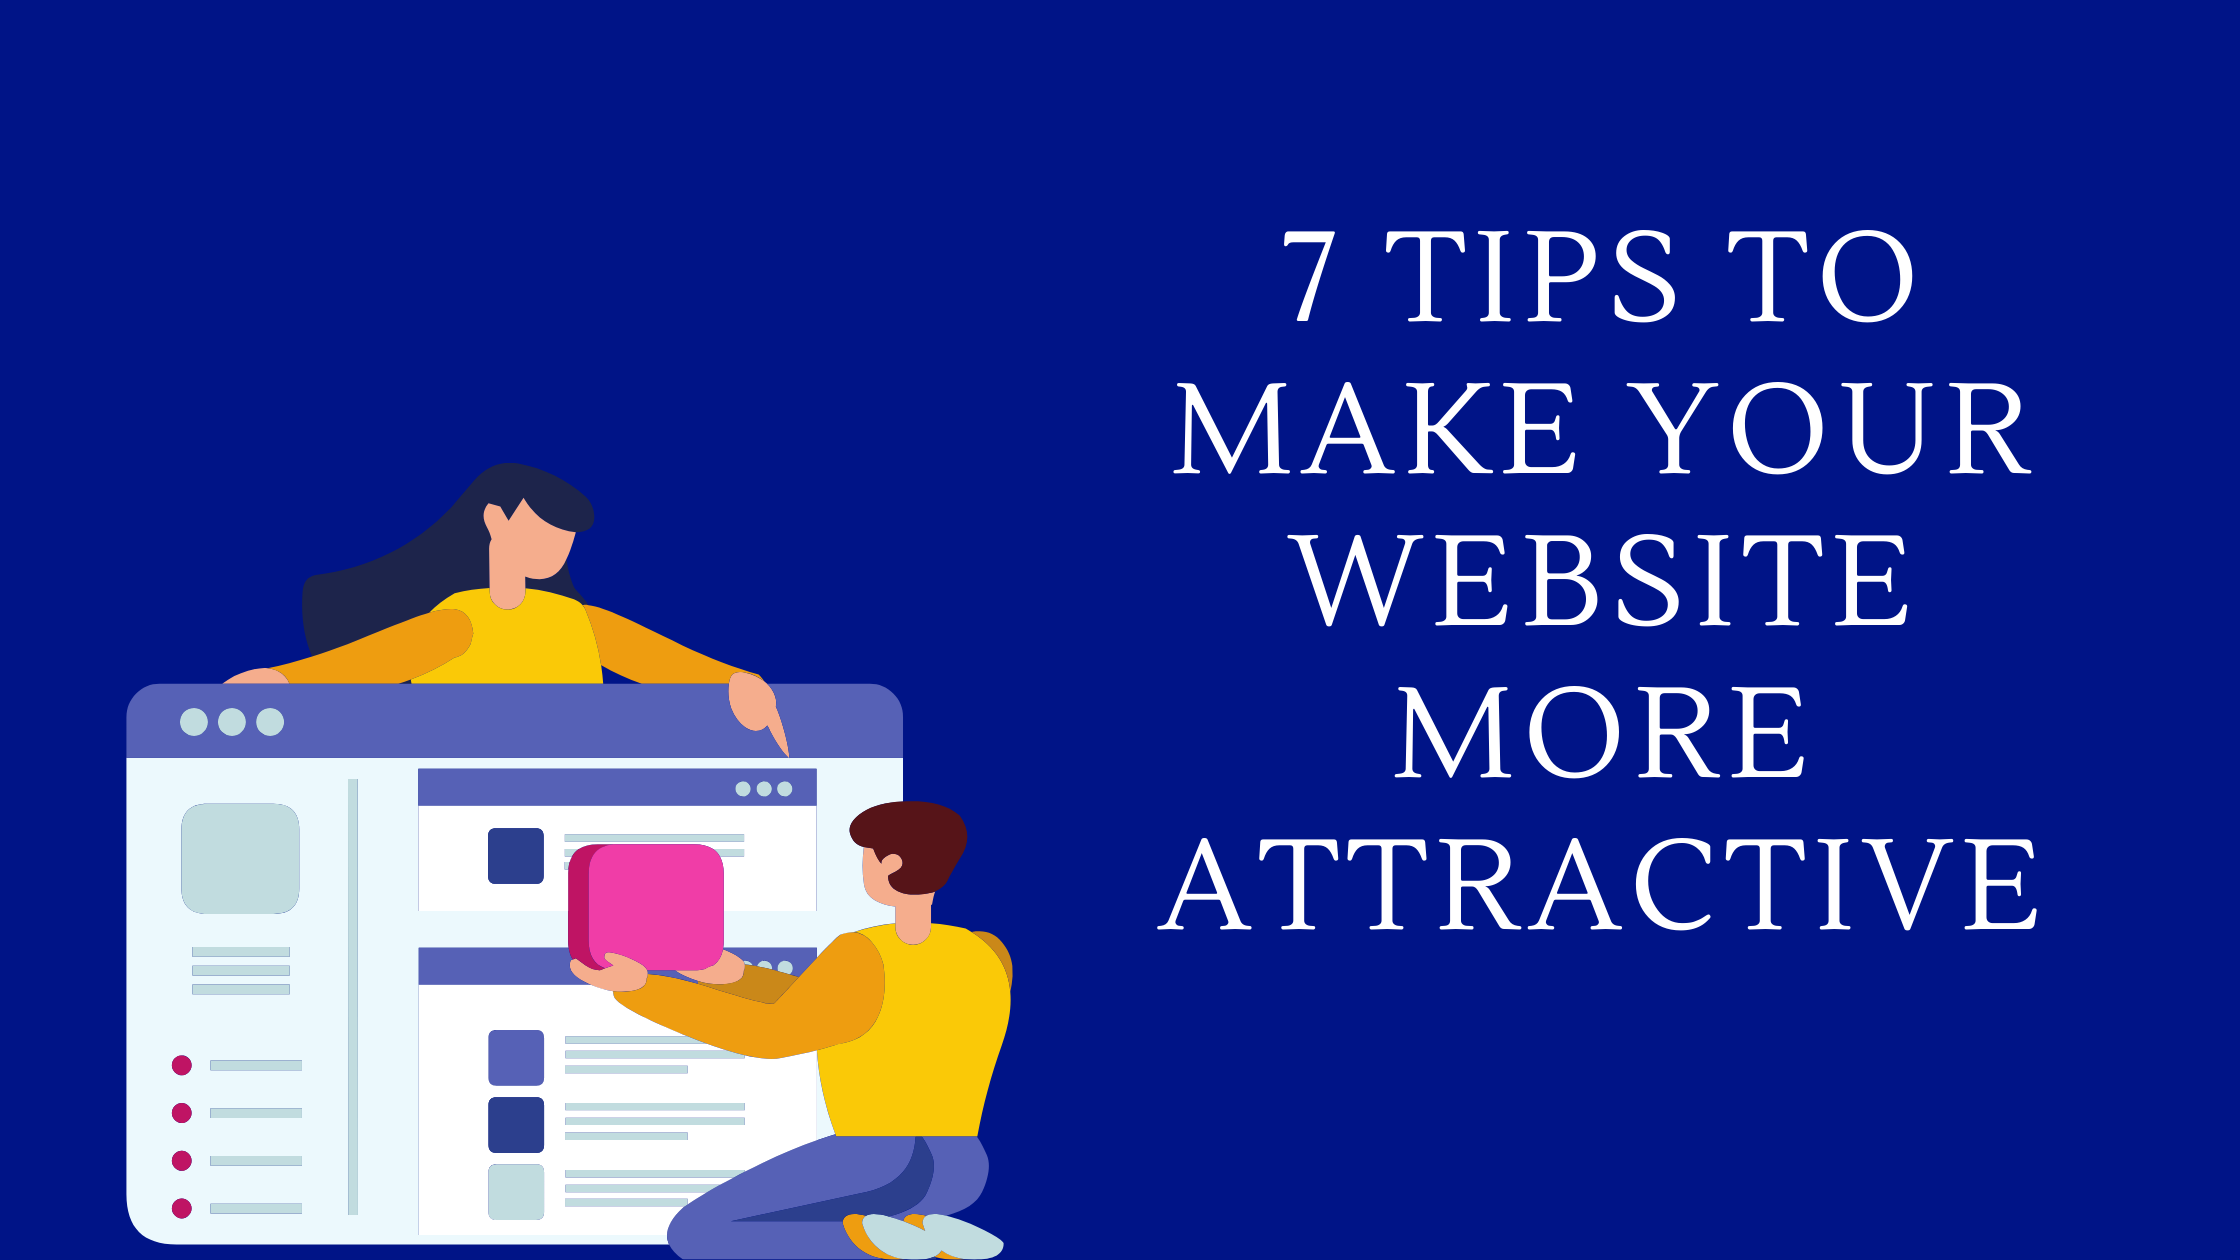 7 Tips to make your website more attractive